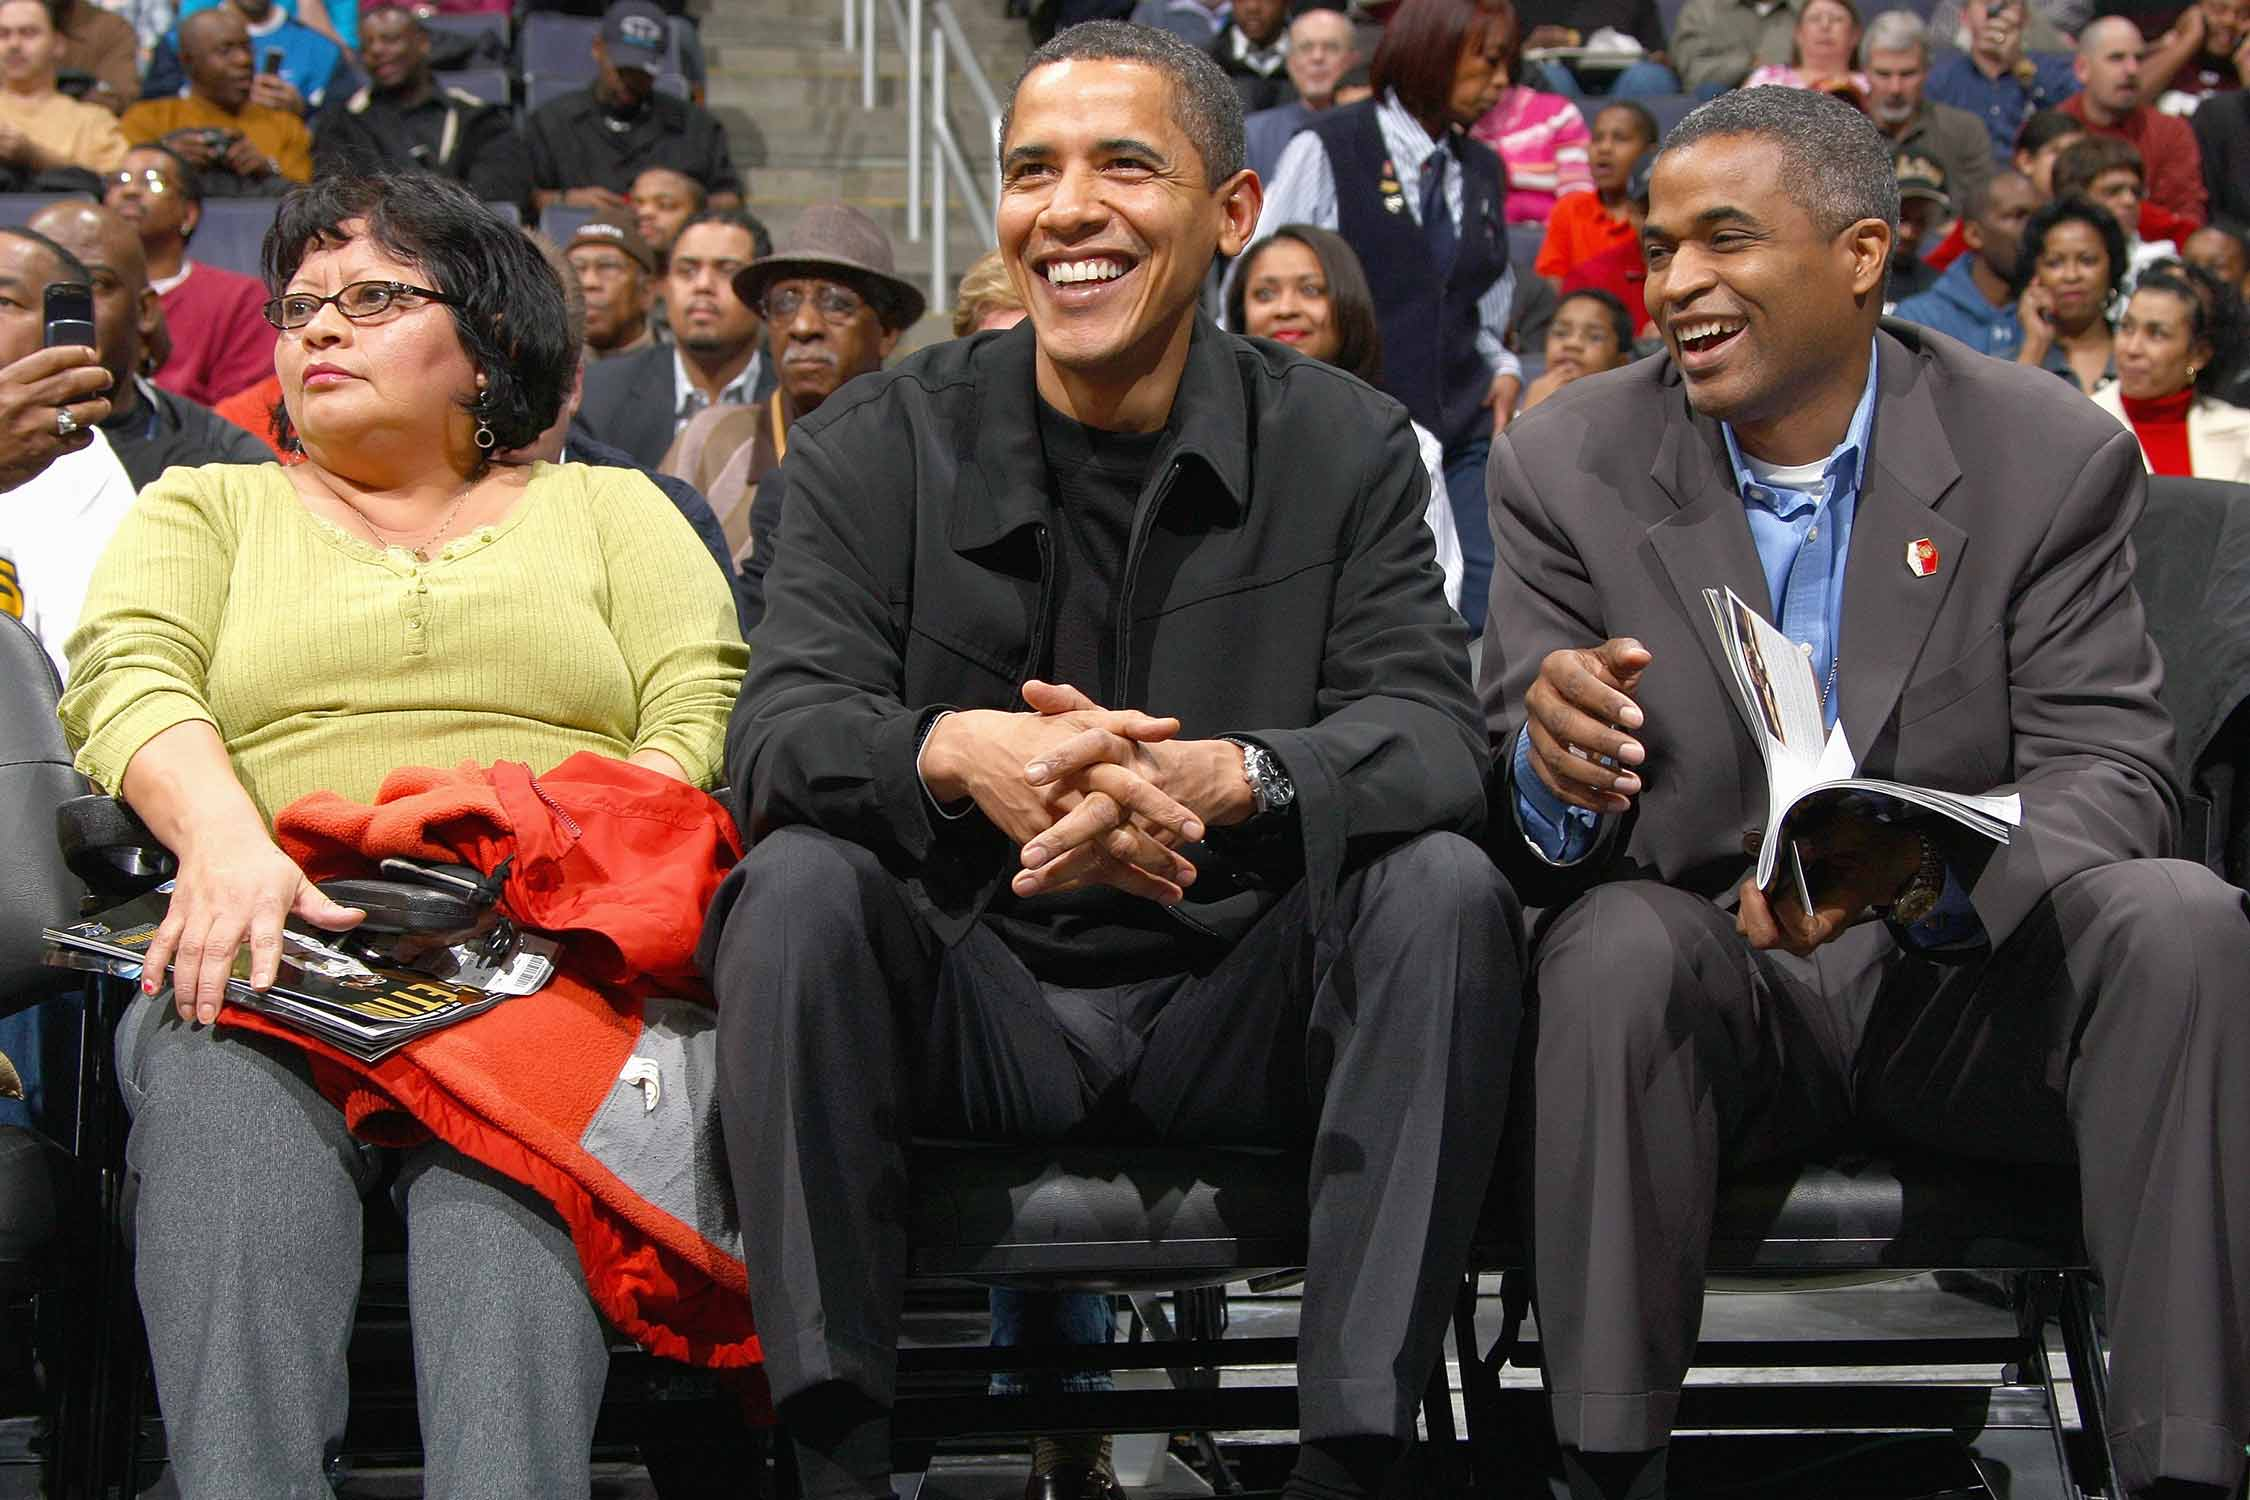 Obama sitting courtside for a Wizards-Bulls game in 2007.